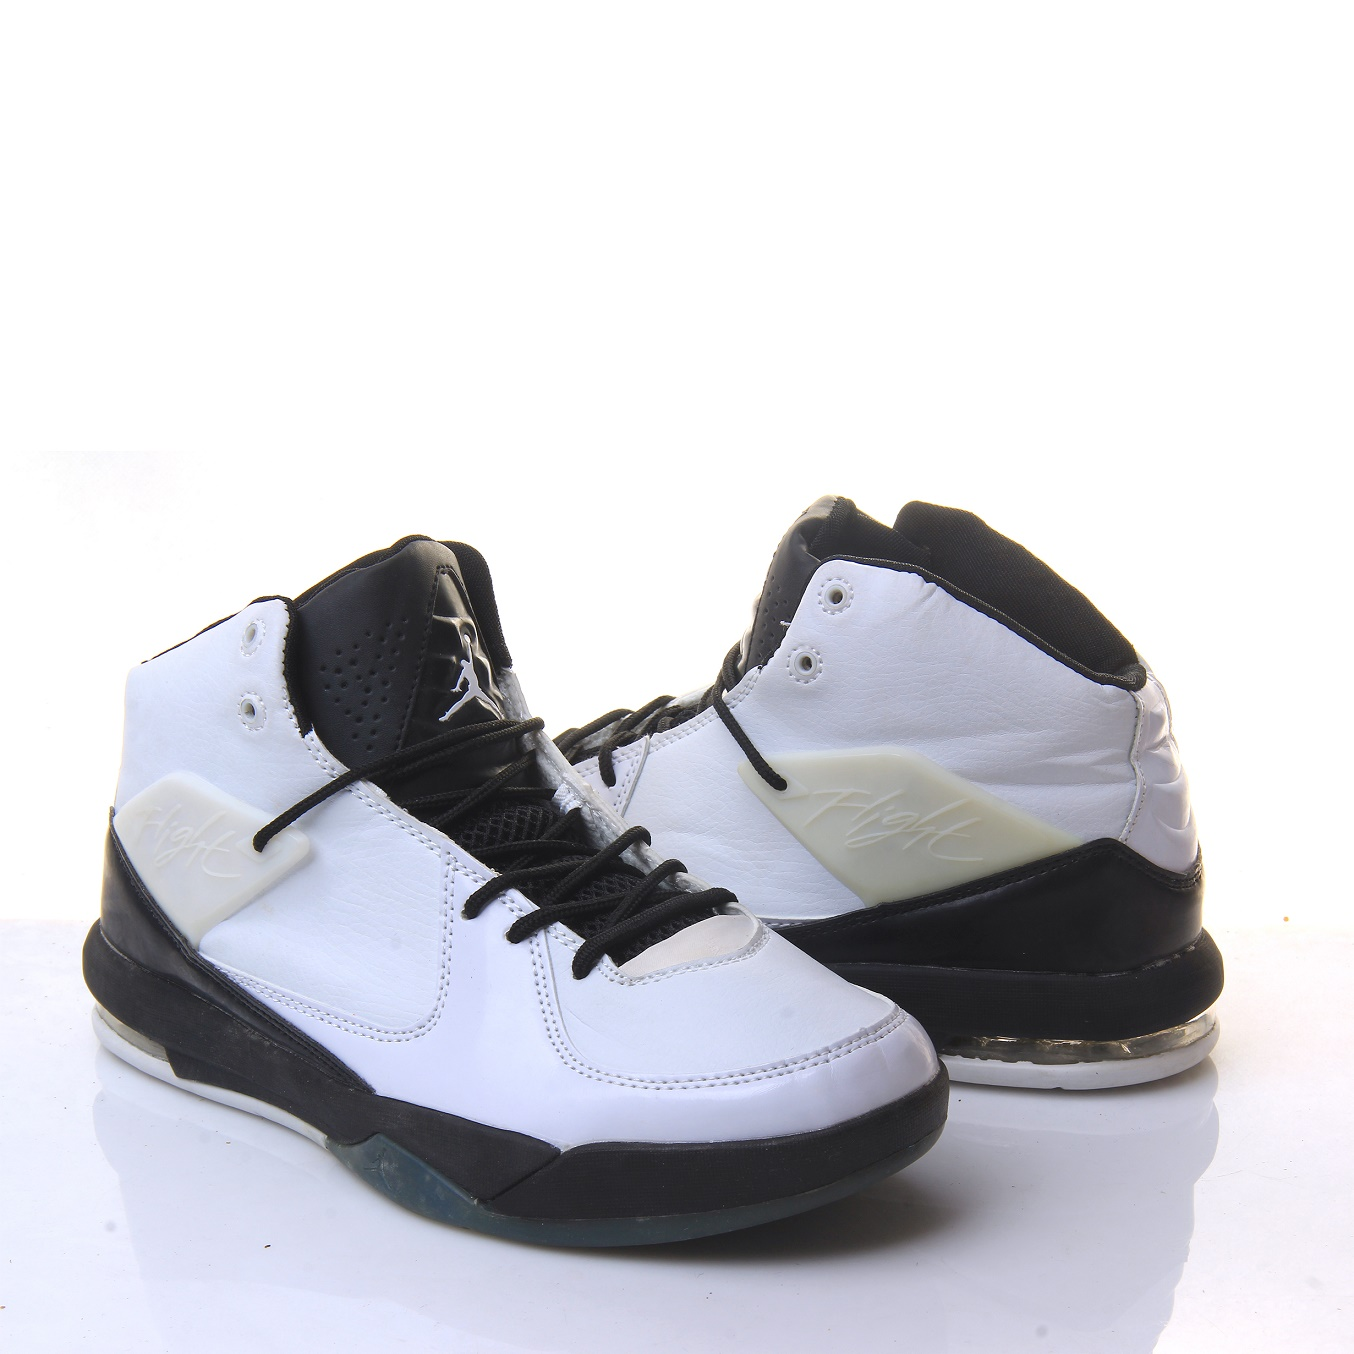 17d6ea3b9b15 Jordan Air Incline Men s Shoes White Black